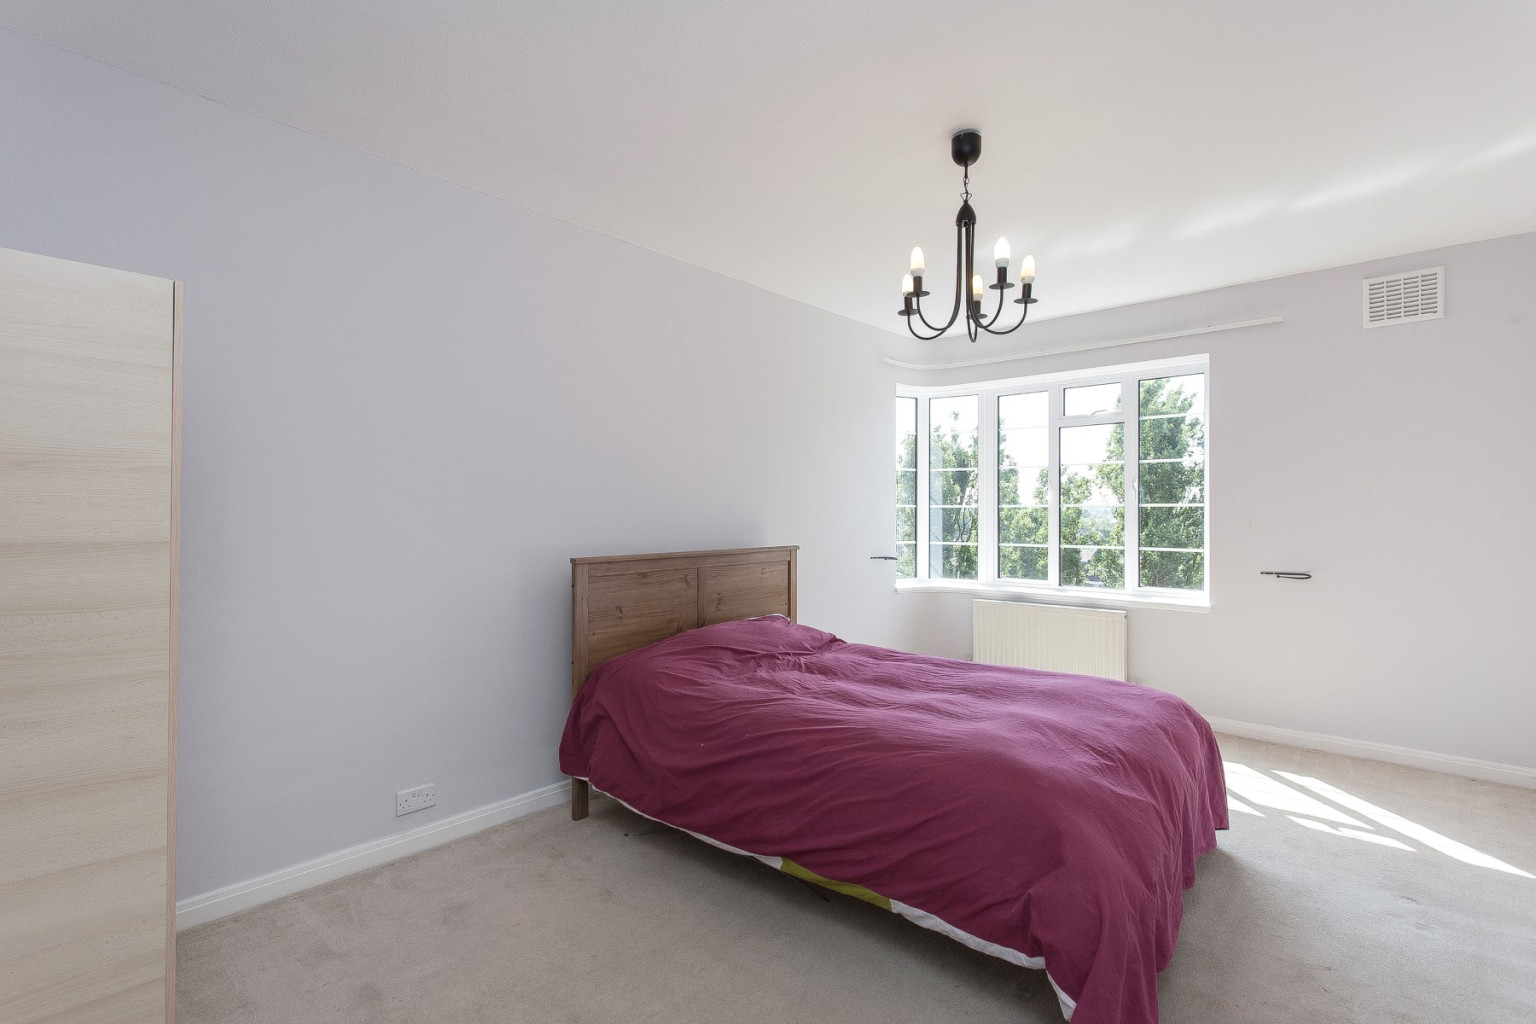 2 Bedroom Flat To Rent Langham Court Wyke Road London Sw20 8rr